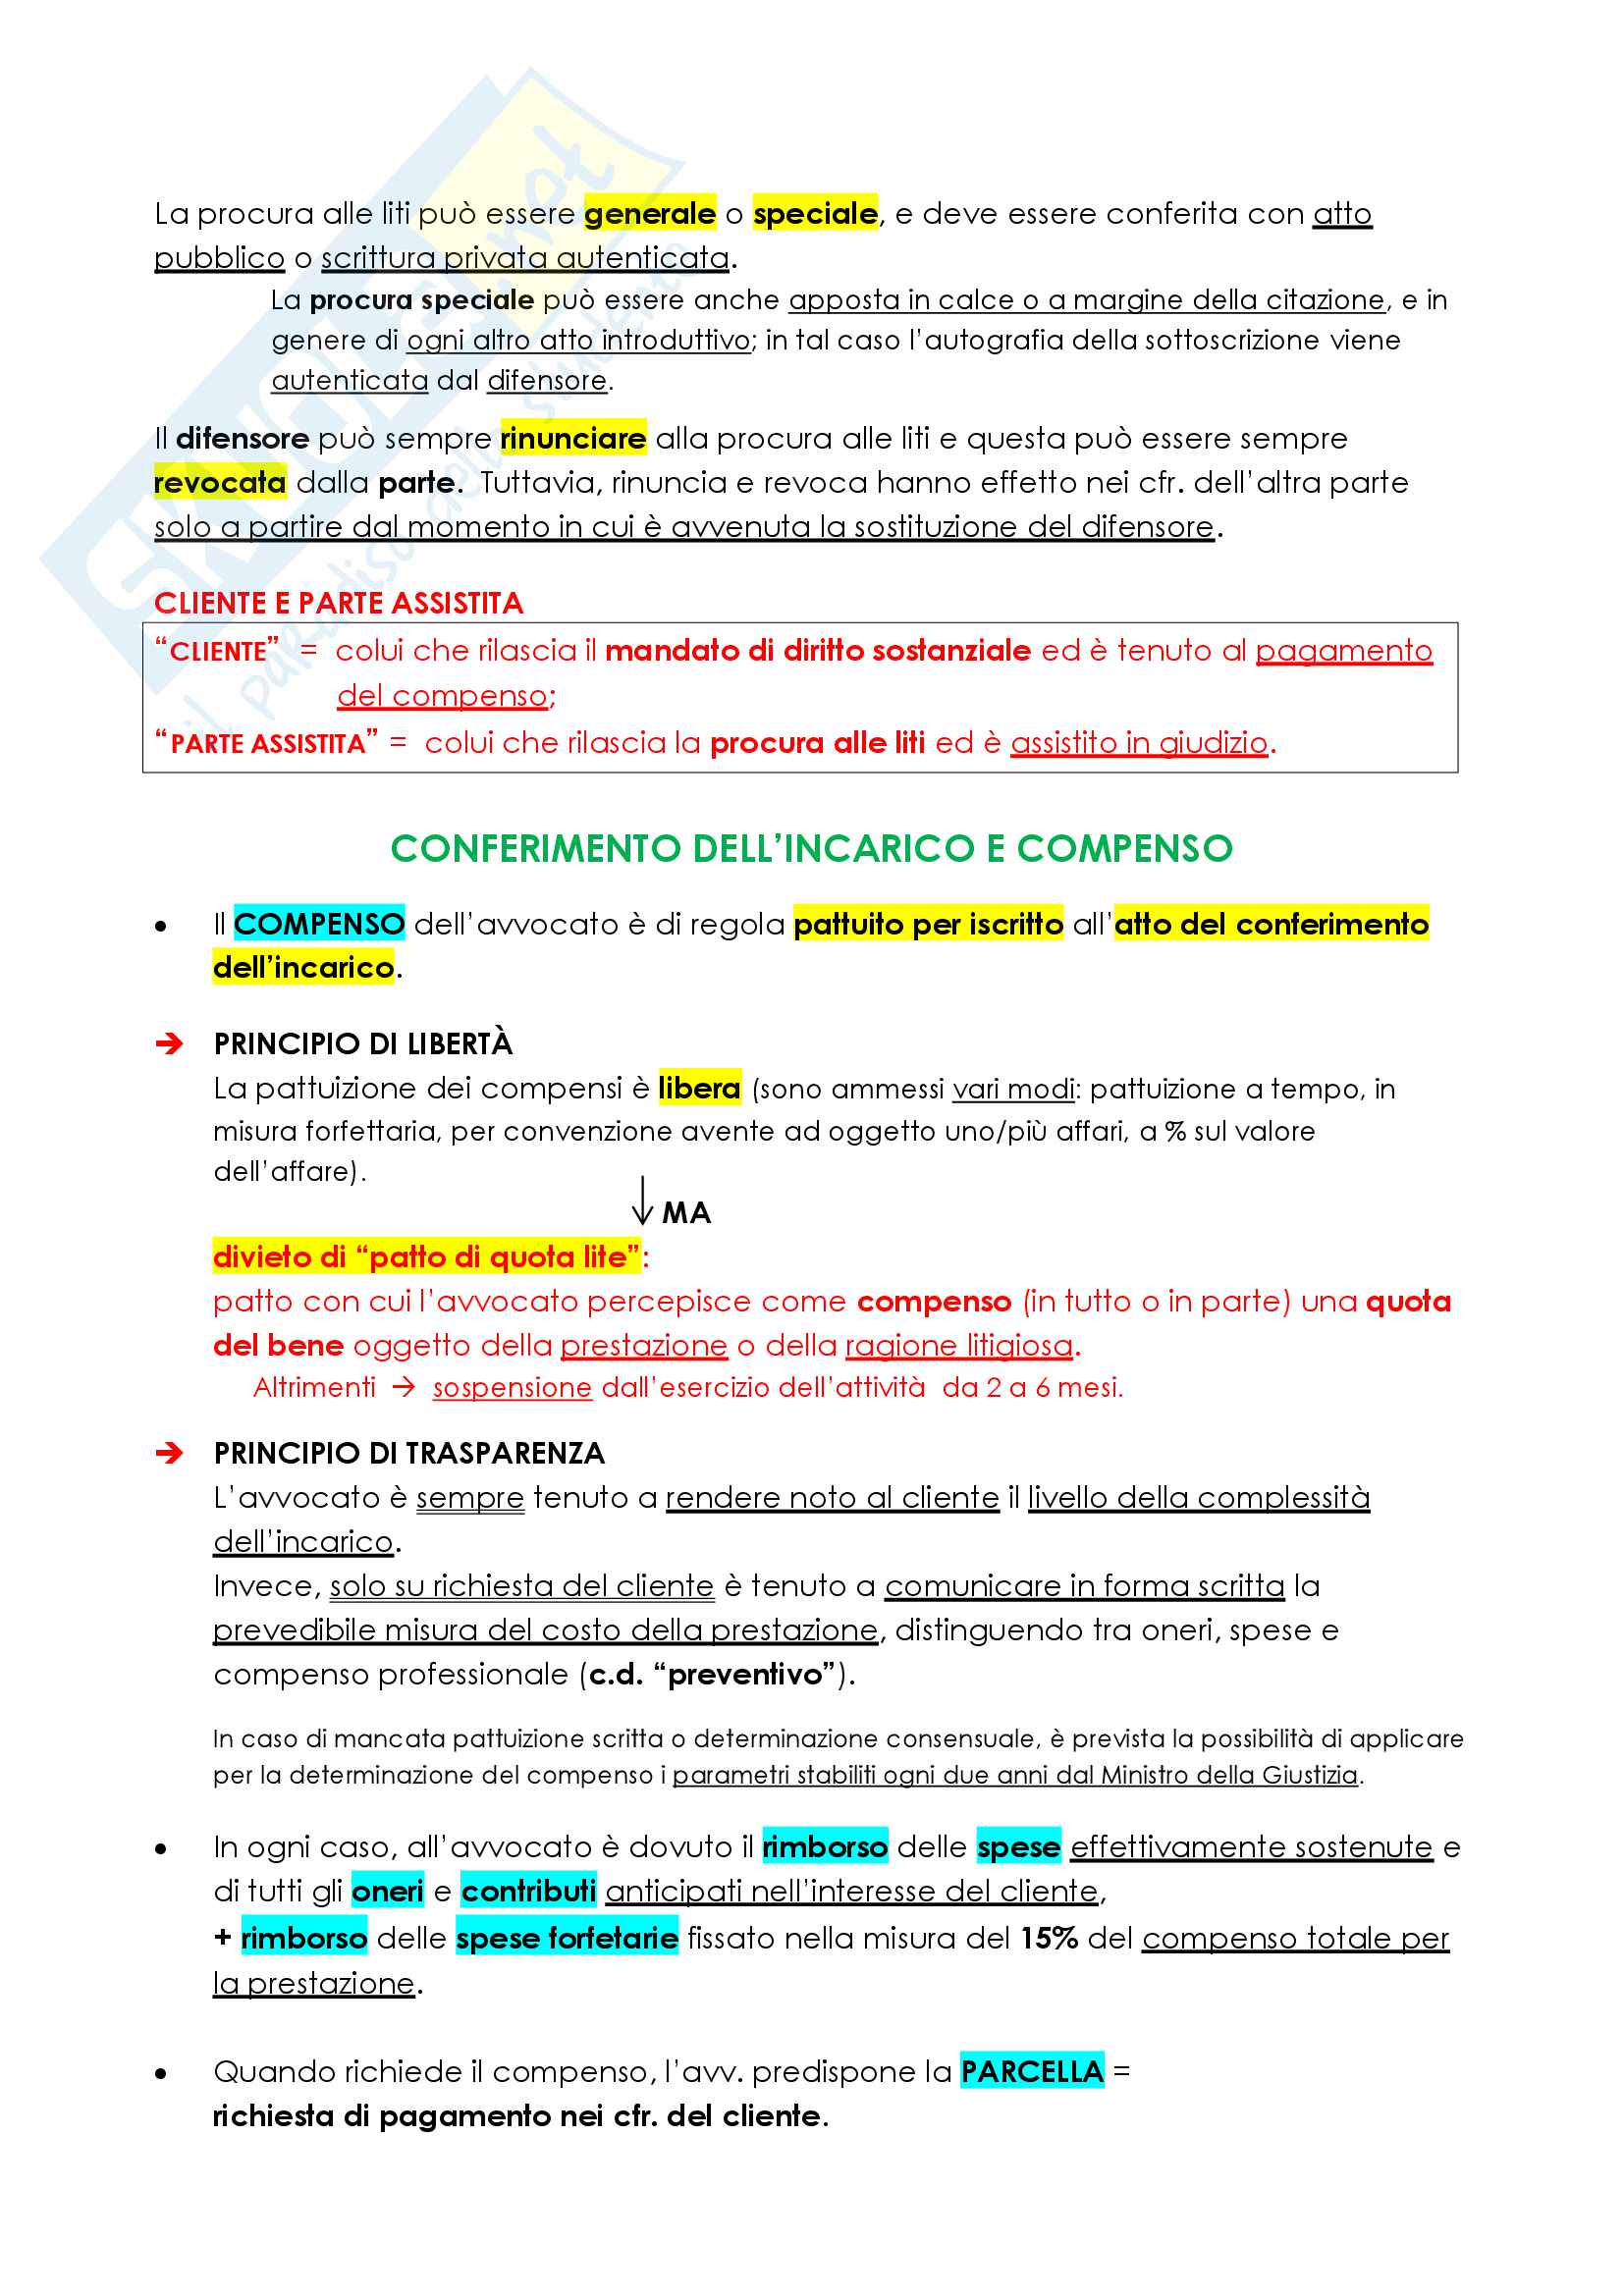 Deontologia Forense Pag. 11